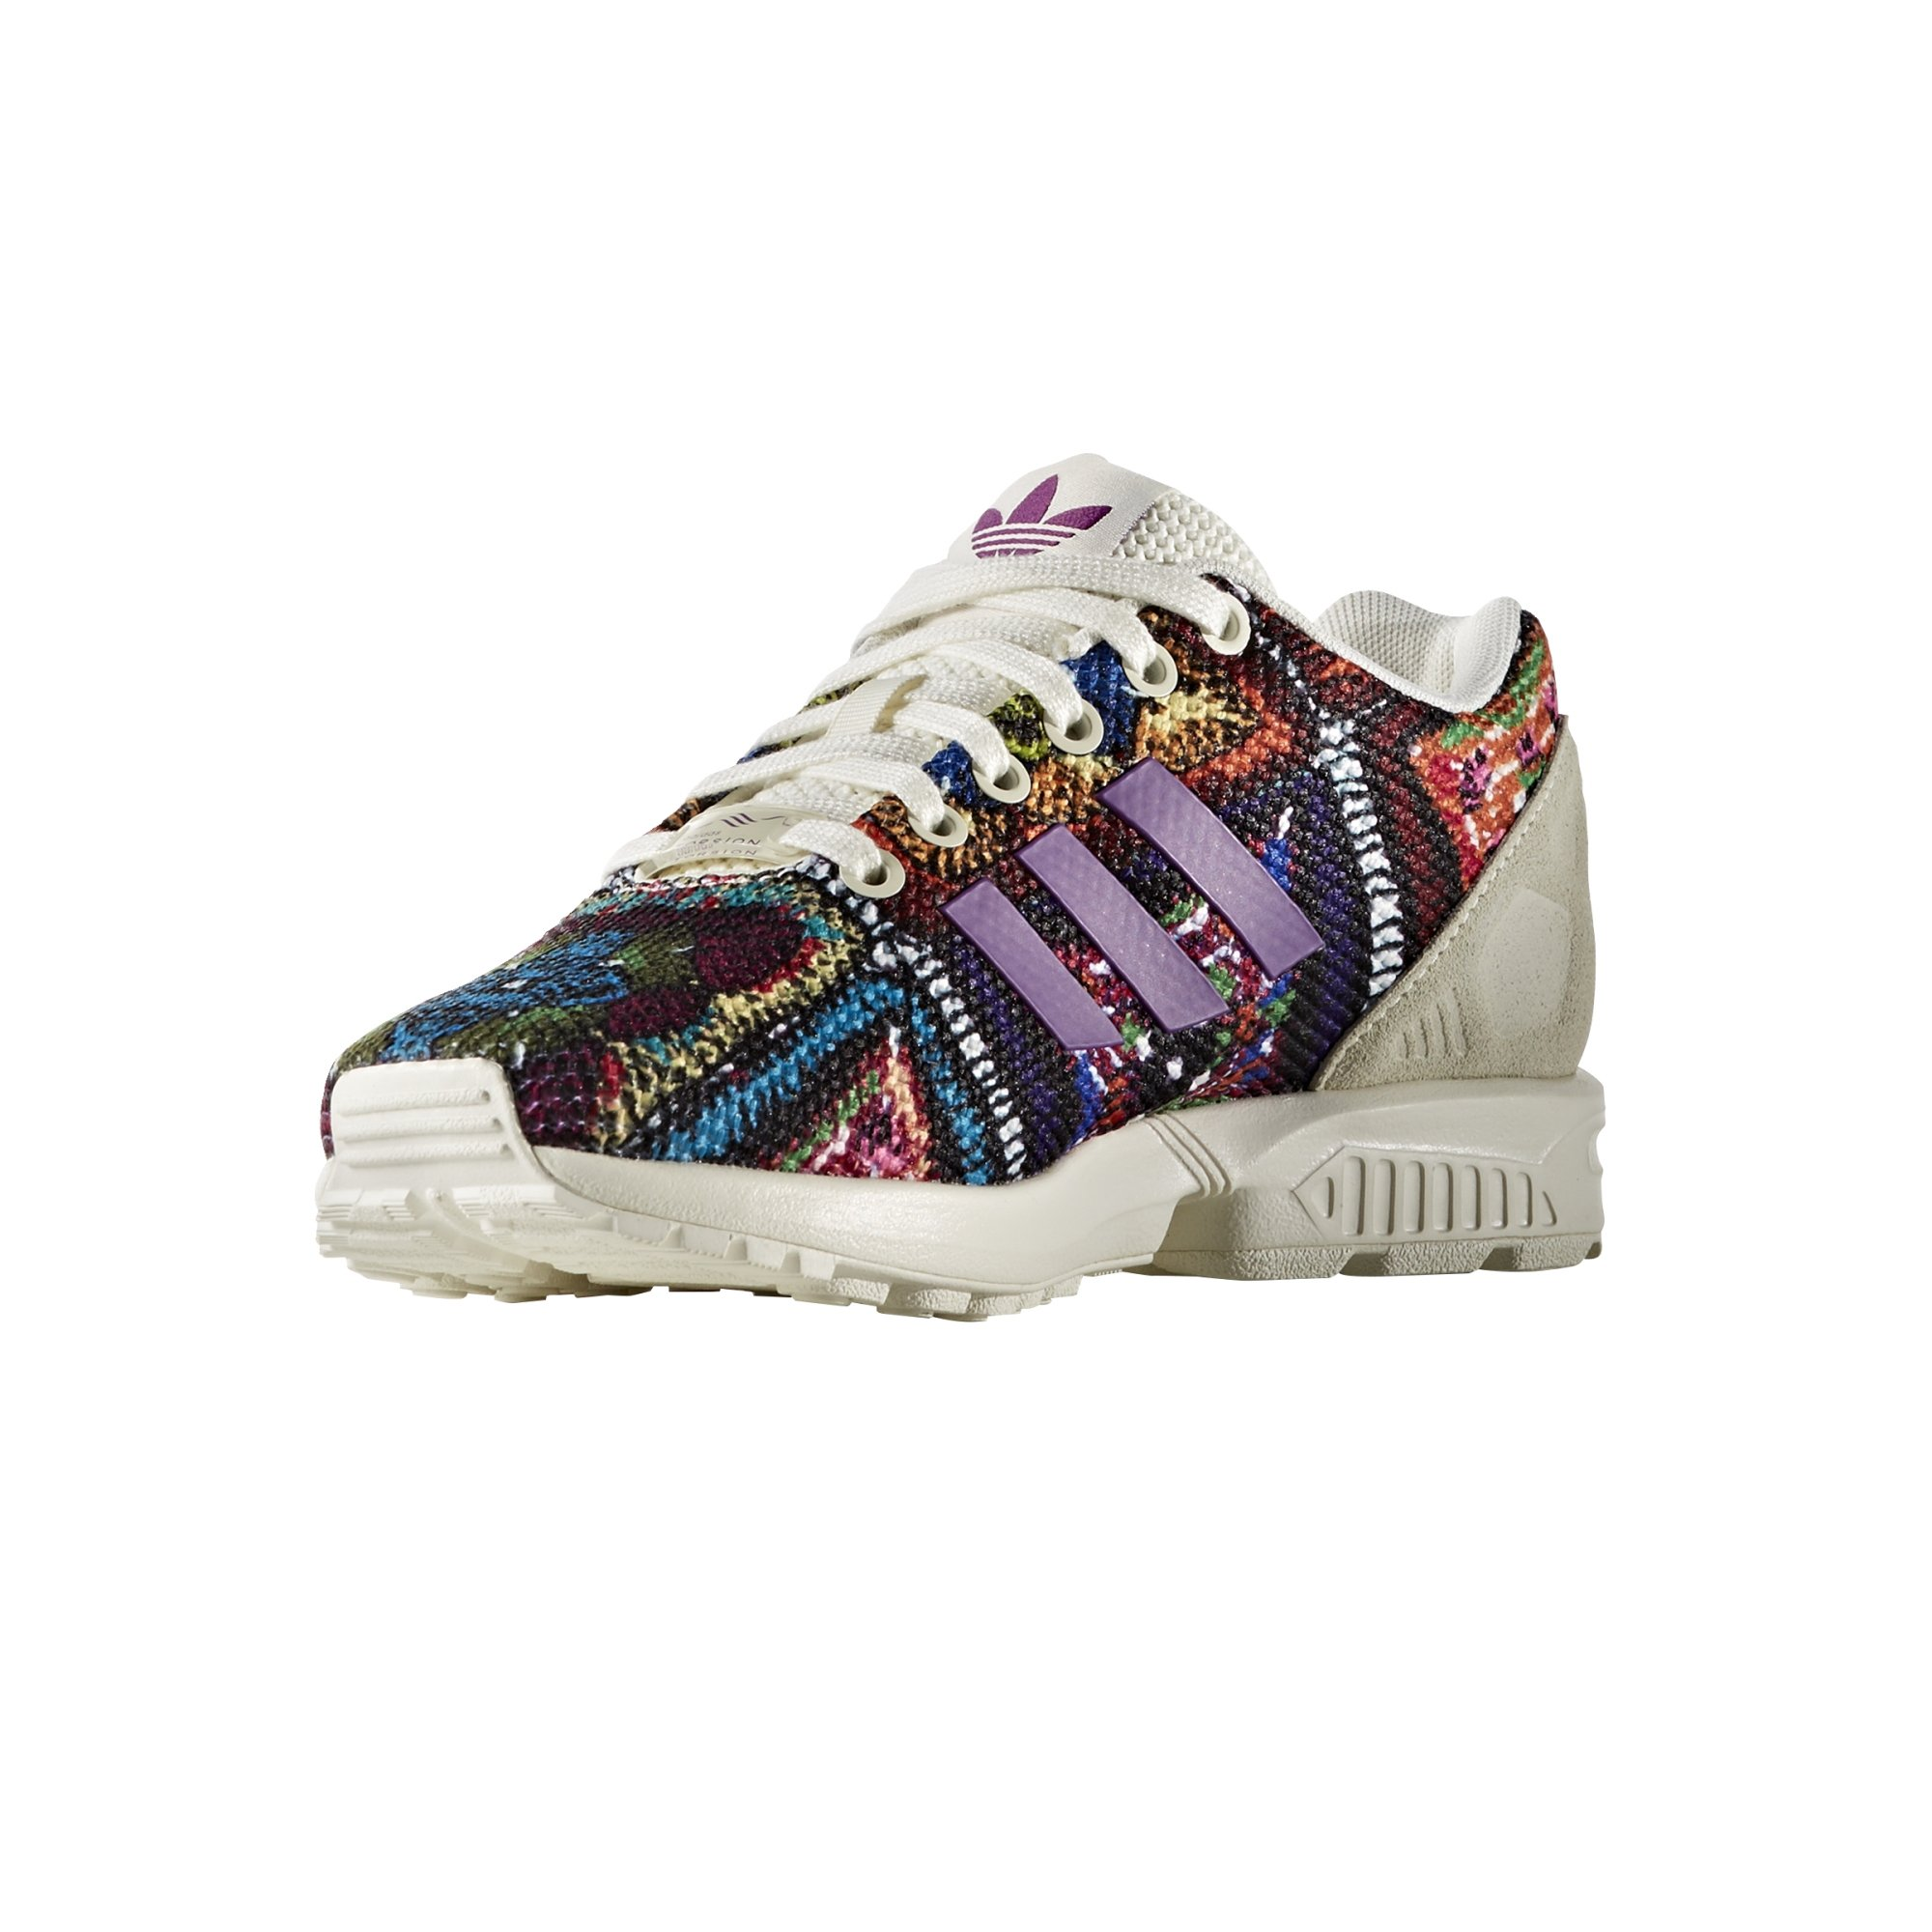 low priced 2fe0a 90032 adidas-originals-zx-flux-w-the-farm-crochita-multicolor-11.jpg